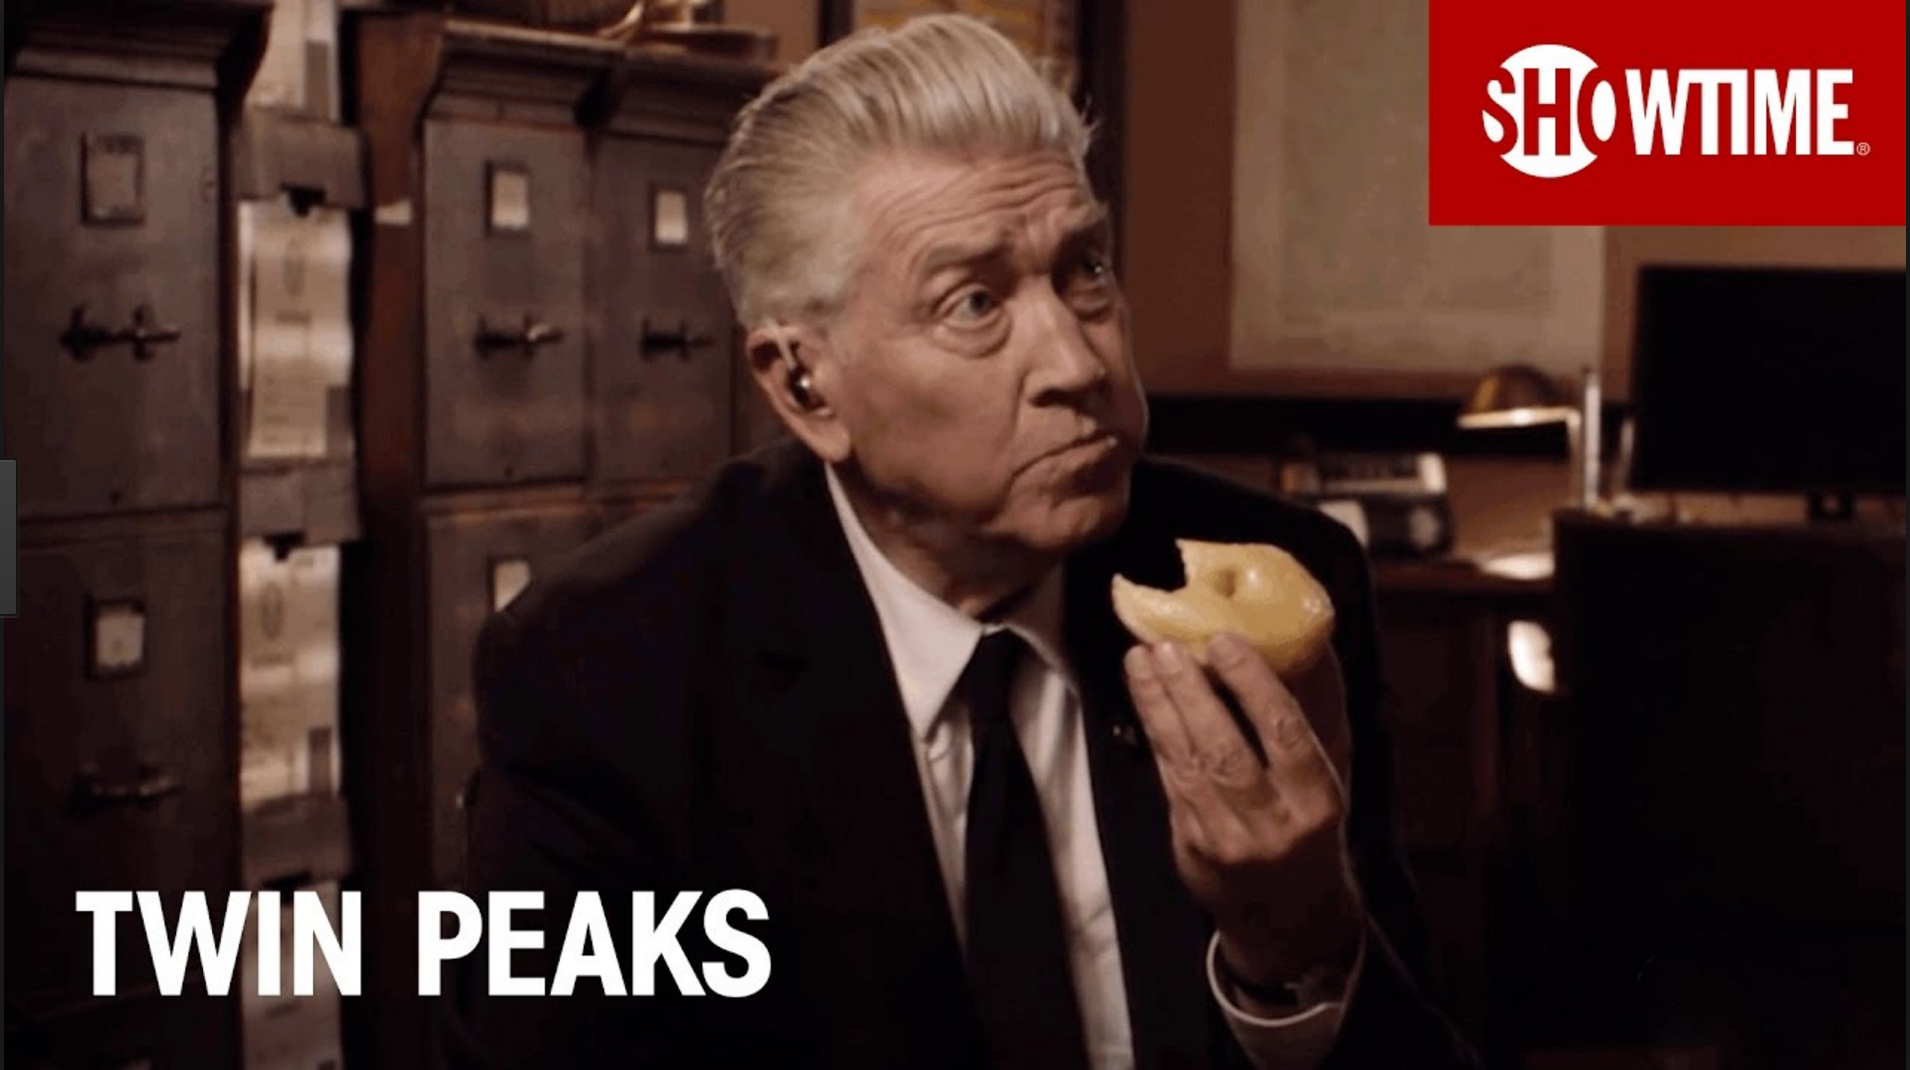 Image of David Lynch. Twin Peaks returns to the TV after 25 years